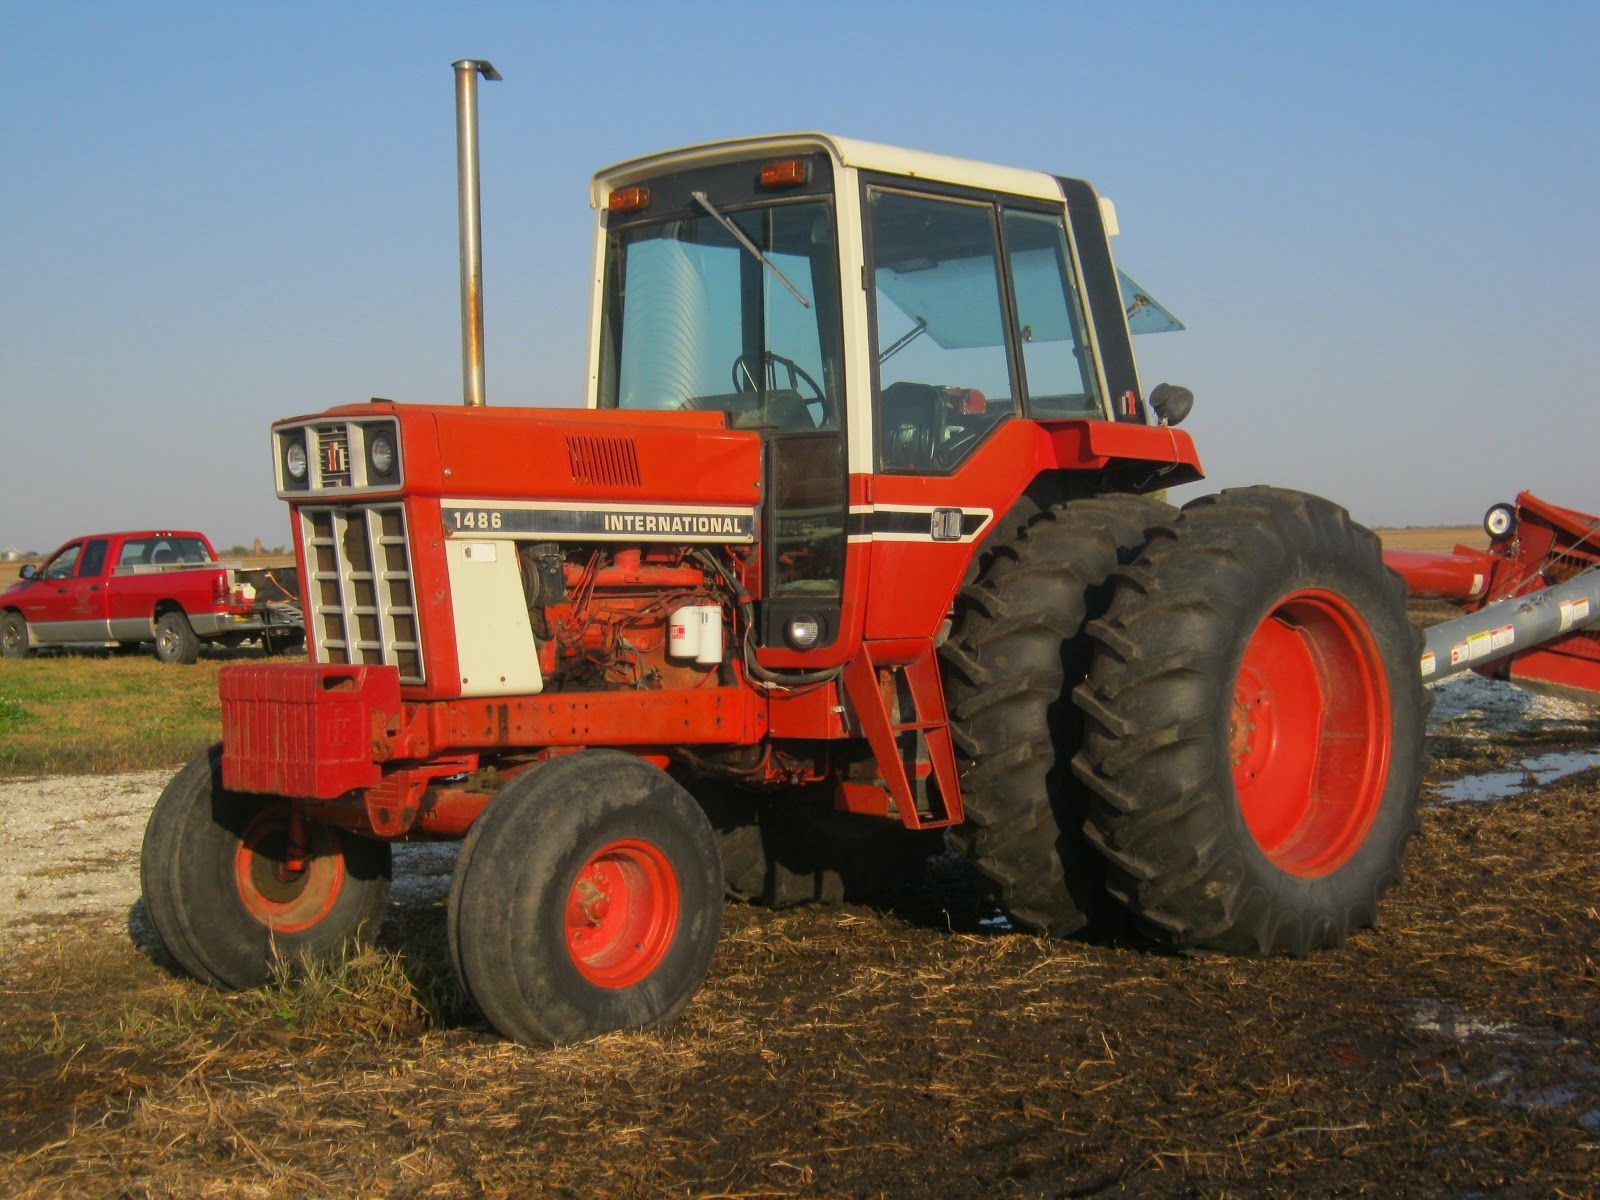 Ford Tractor Auger Parts : International harvester tractors tractor back in the